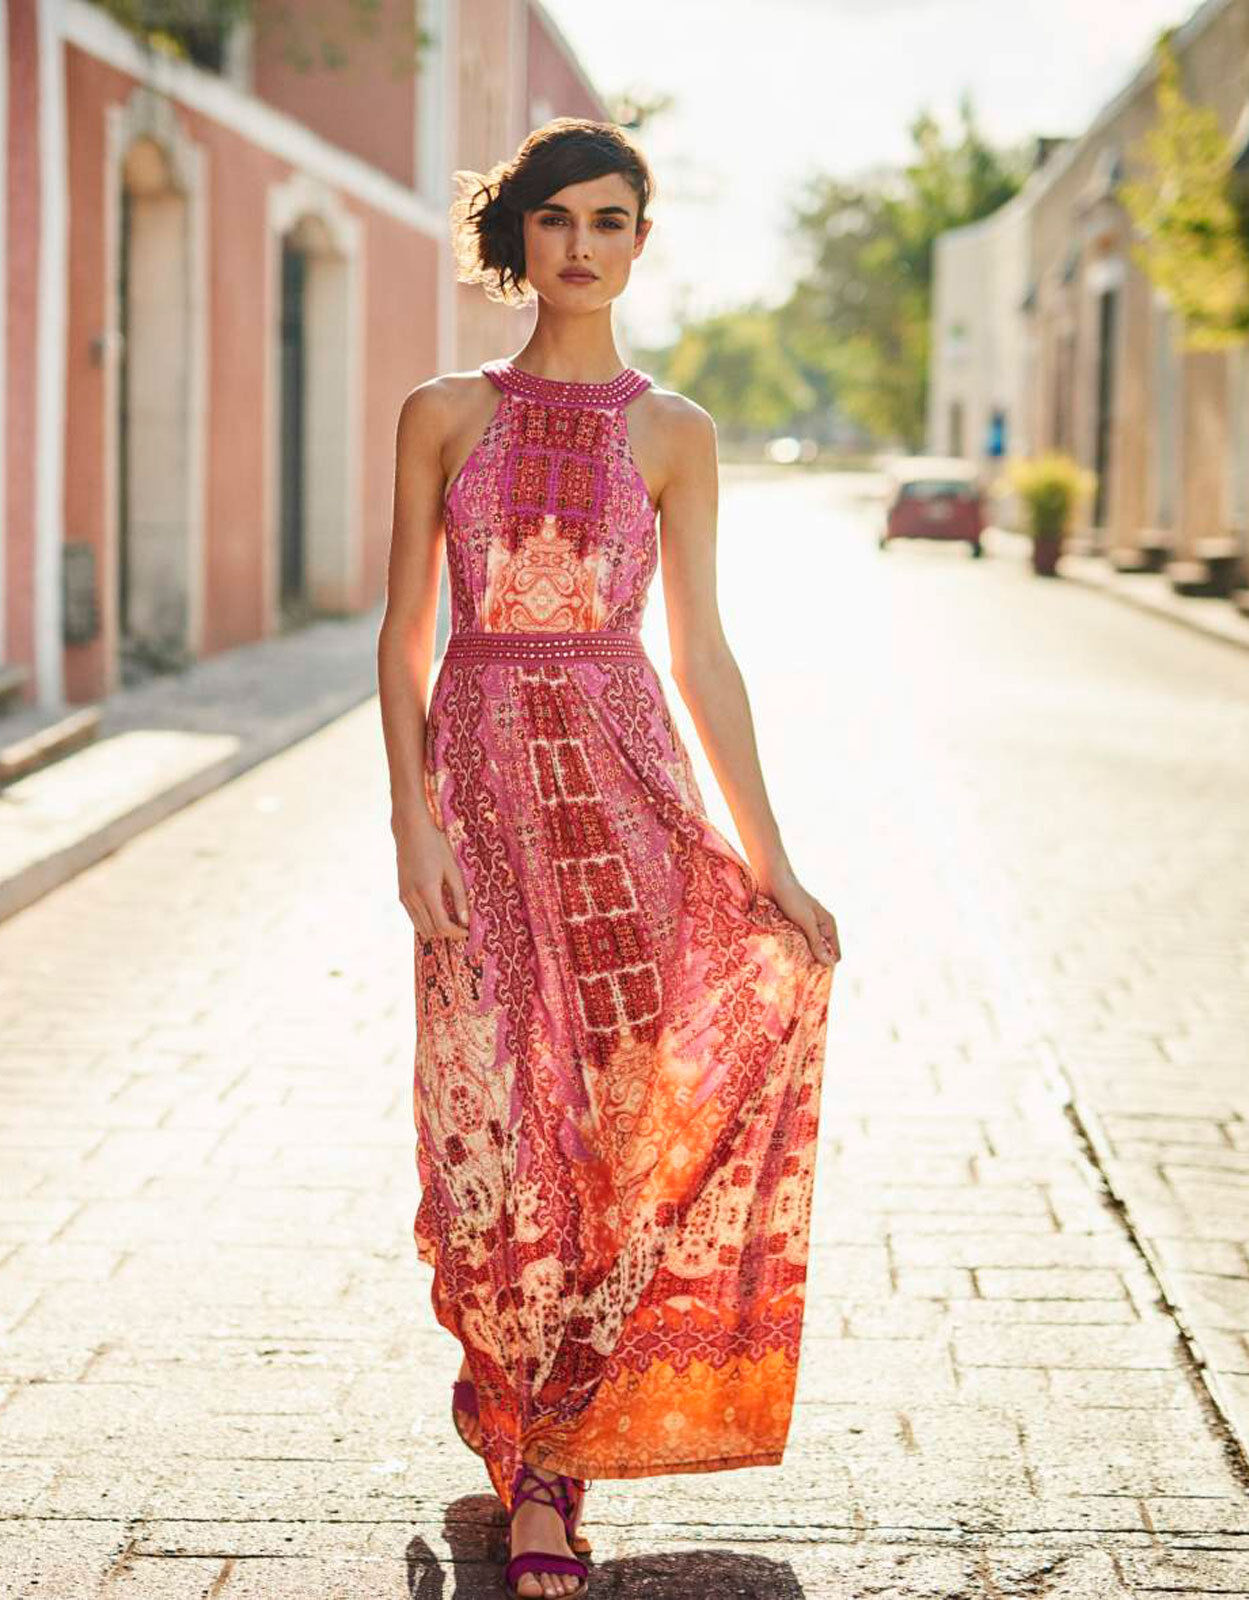 New Monsoon Preena Paisley Print Maxi Dress Größe 18 holiday beach wedding   3